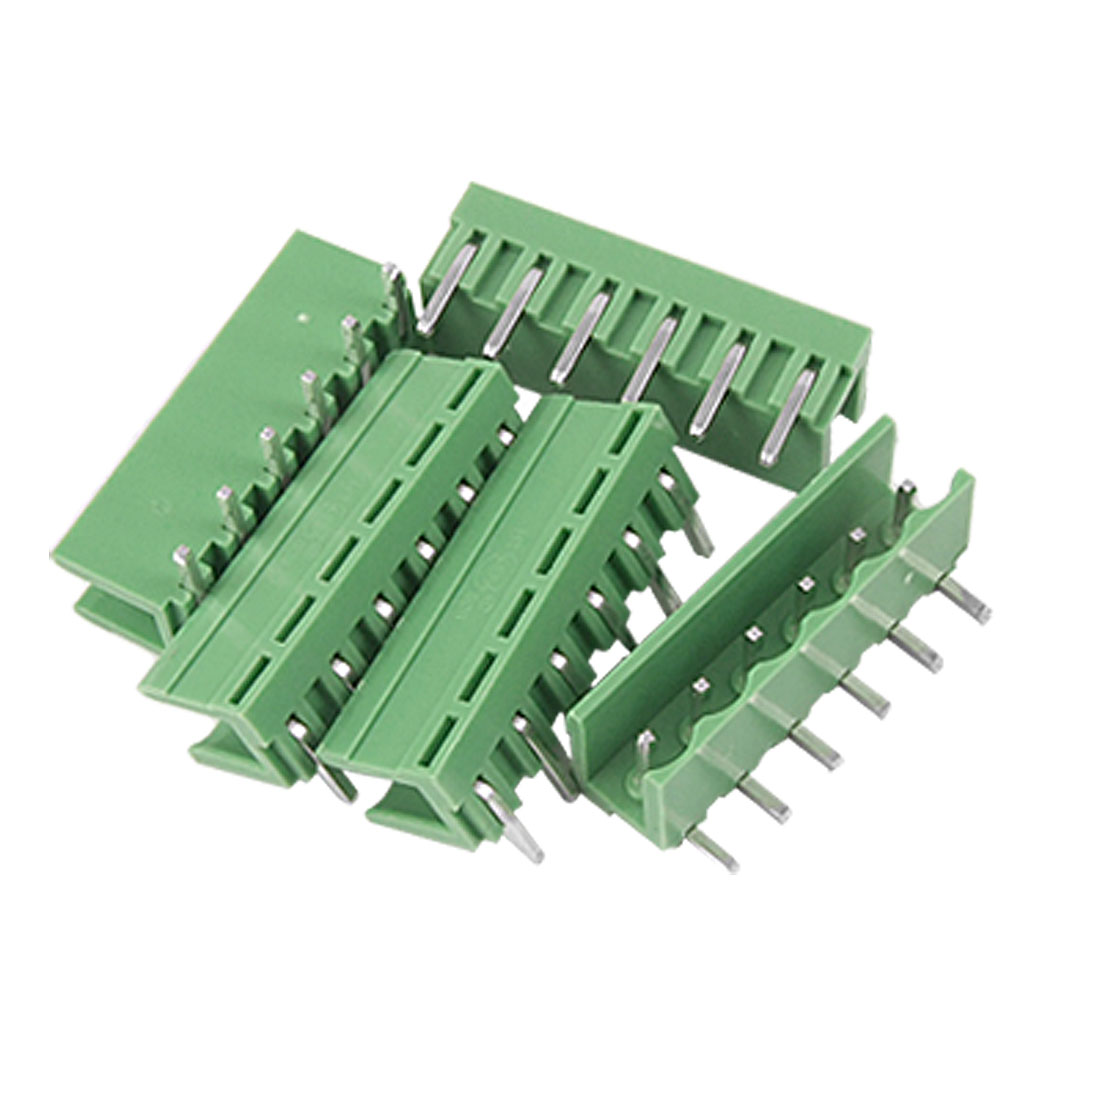 5 Pcs 5.08mm Pitch 6P Bent Pin Header Pluggable Terminal Block AC 220V